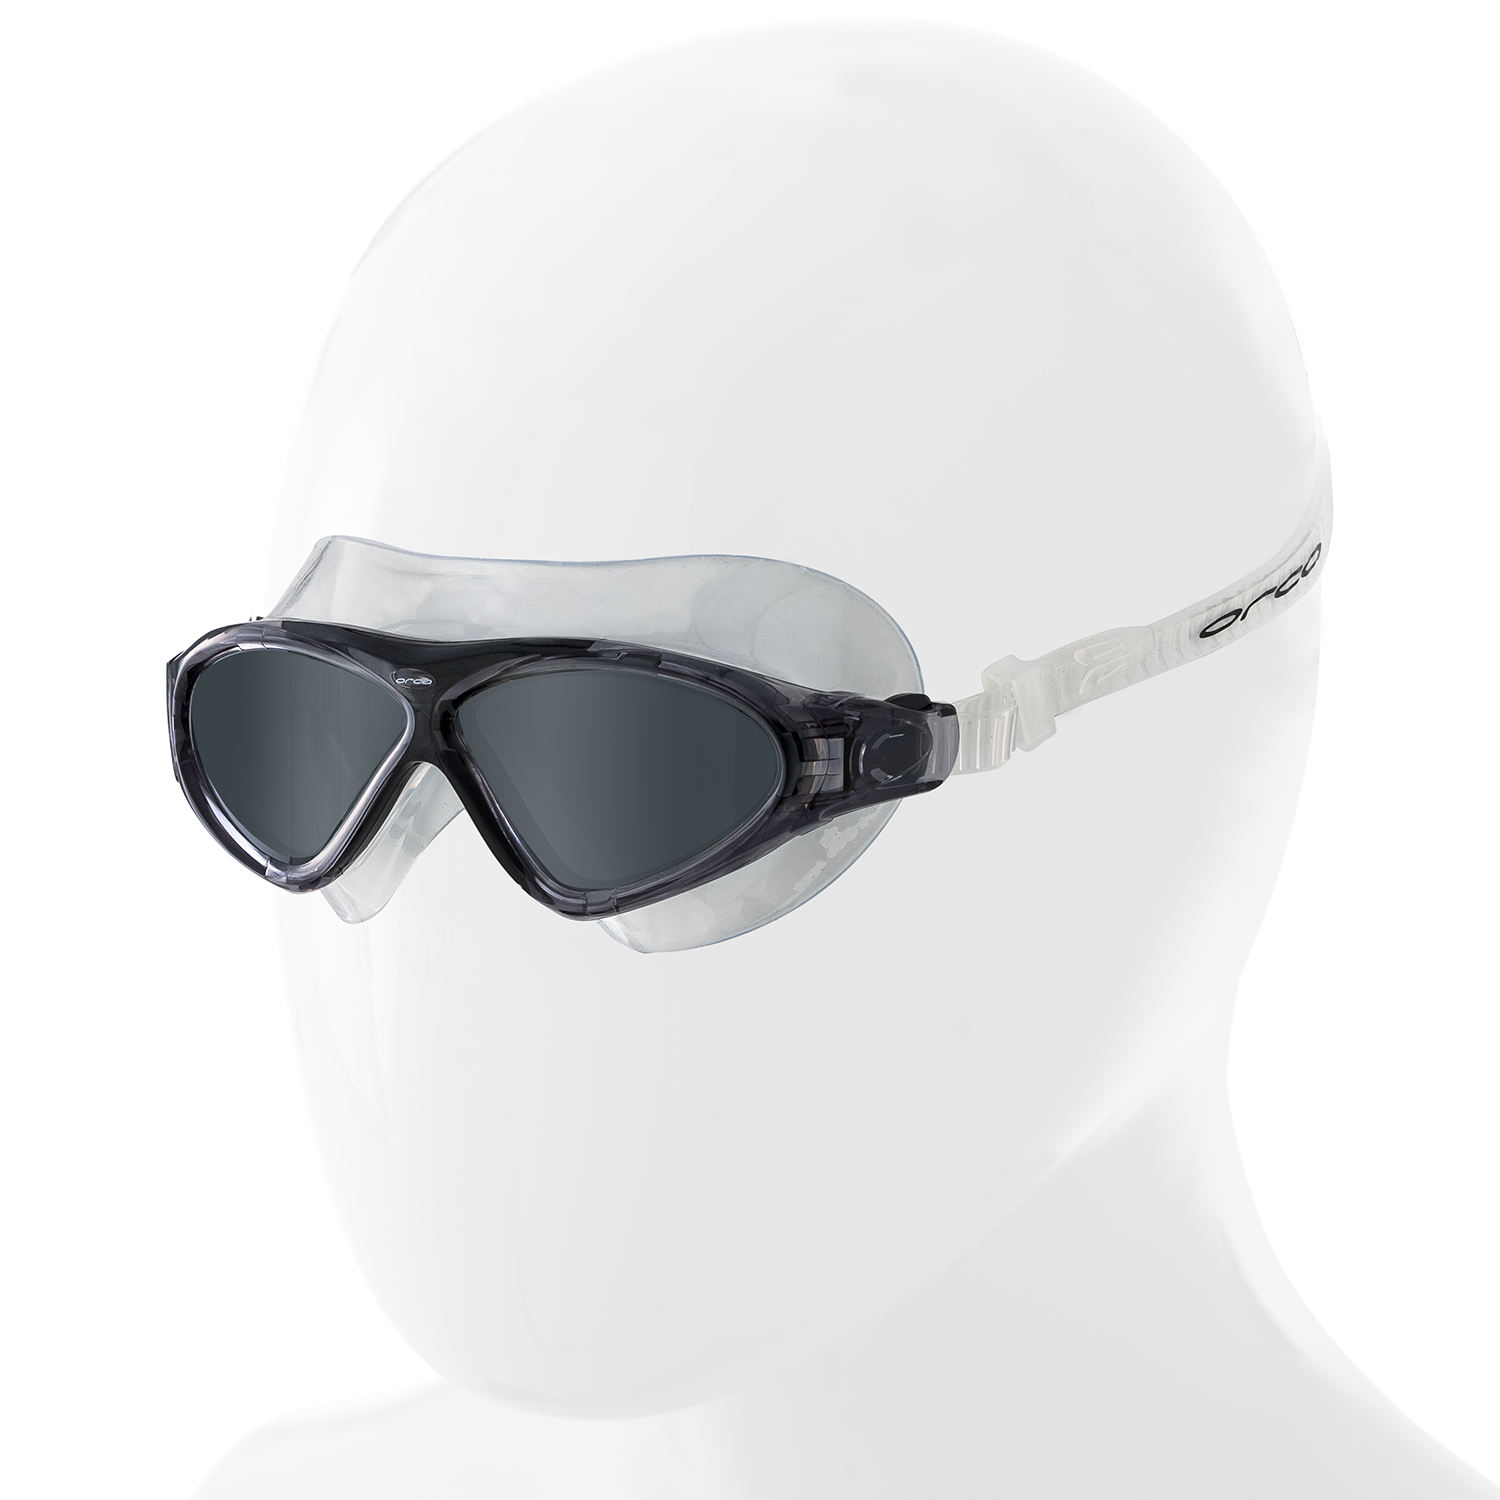 Orca Triathlon swimming mask Goggles